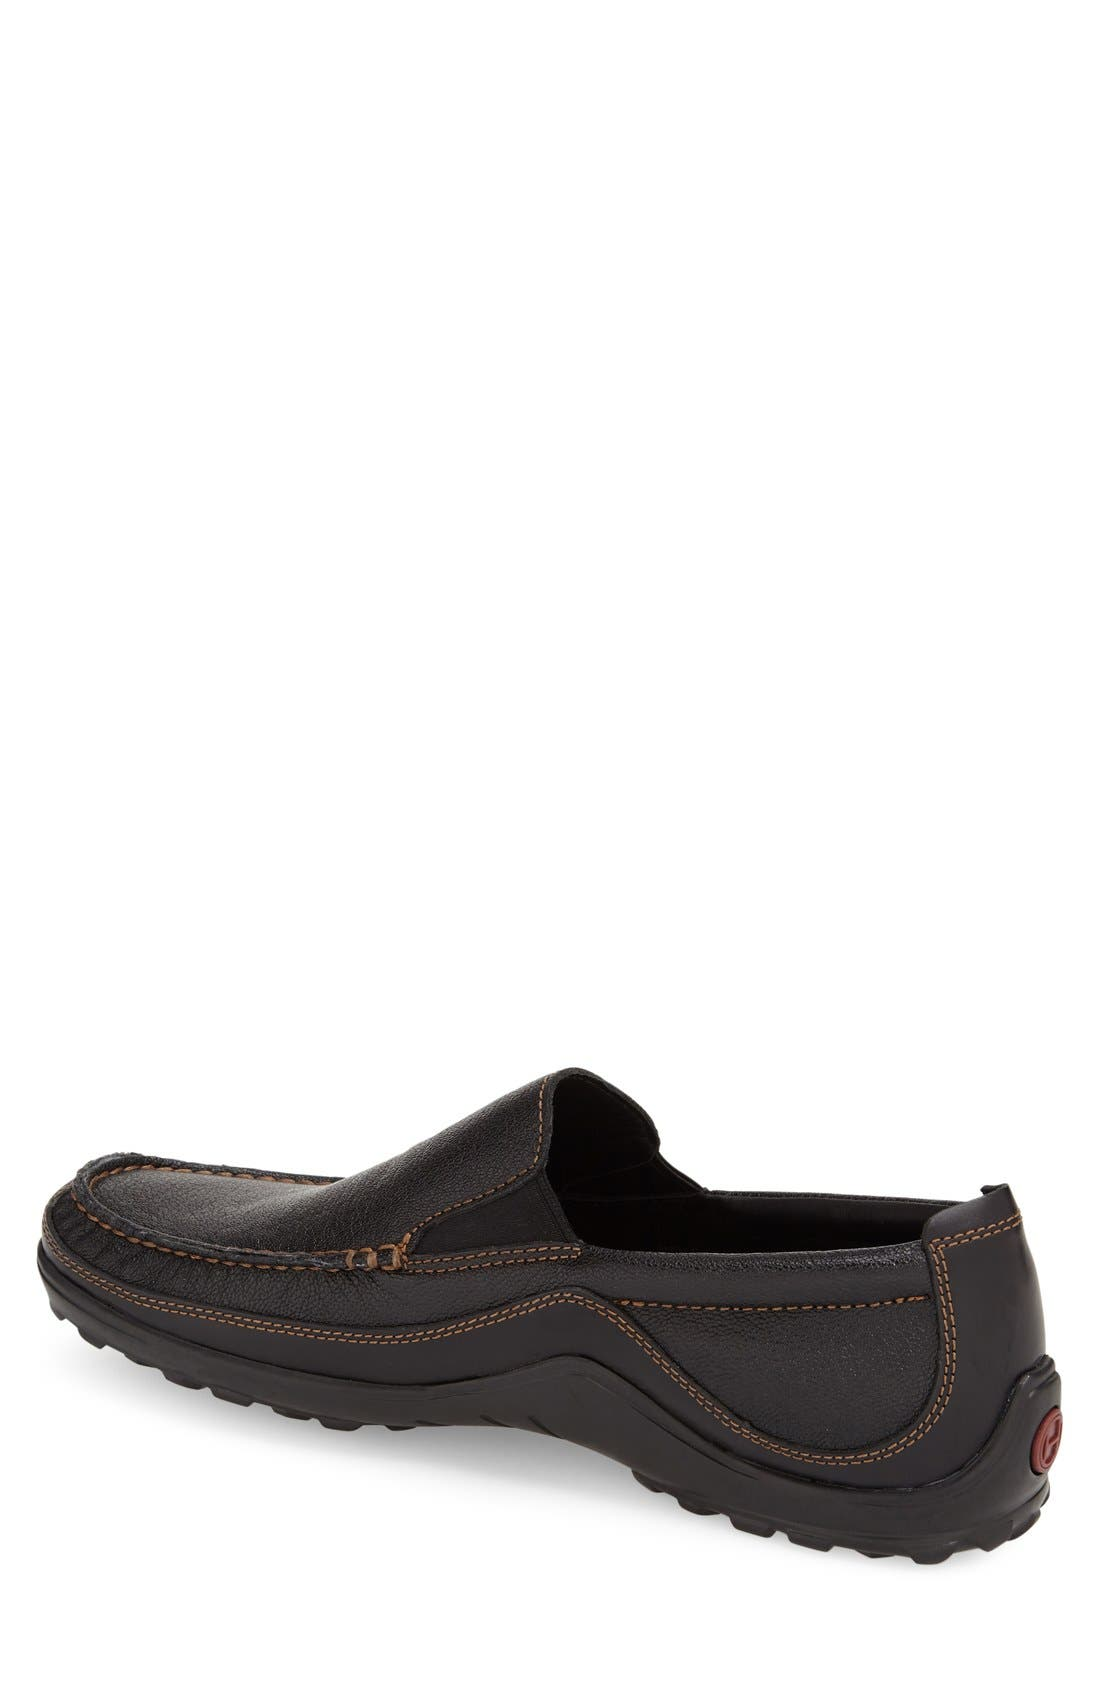 'Tucker Venetian' Loafer,                             Alternate thumbnail 3, color,                             BLACK